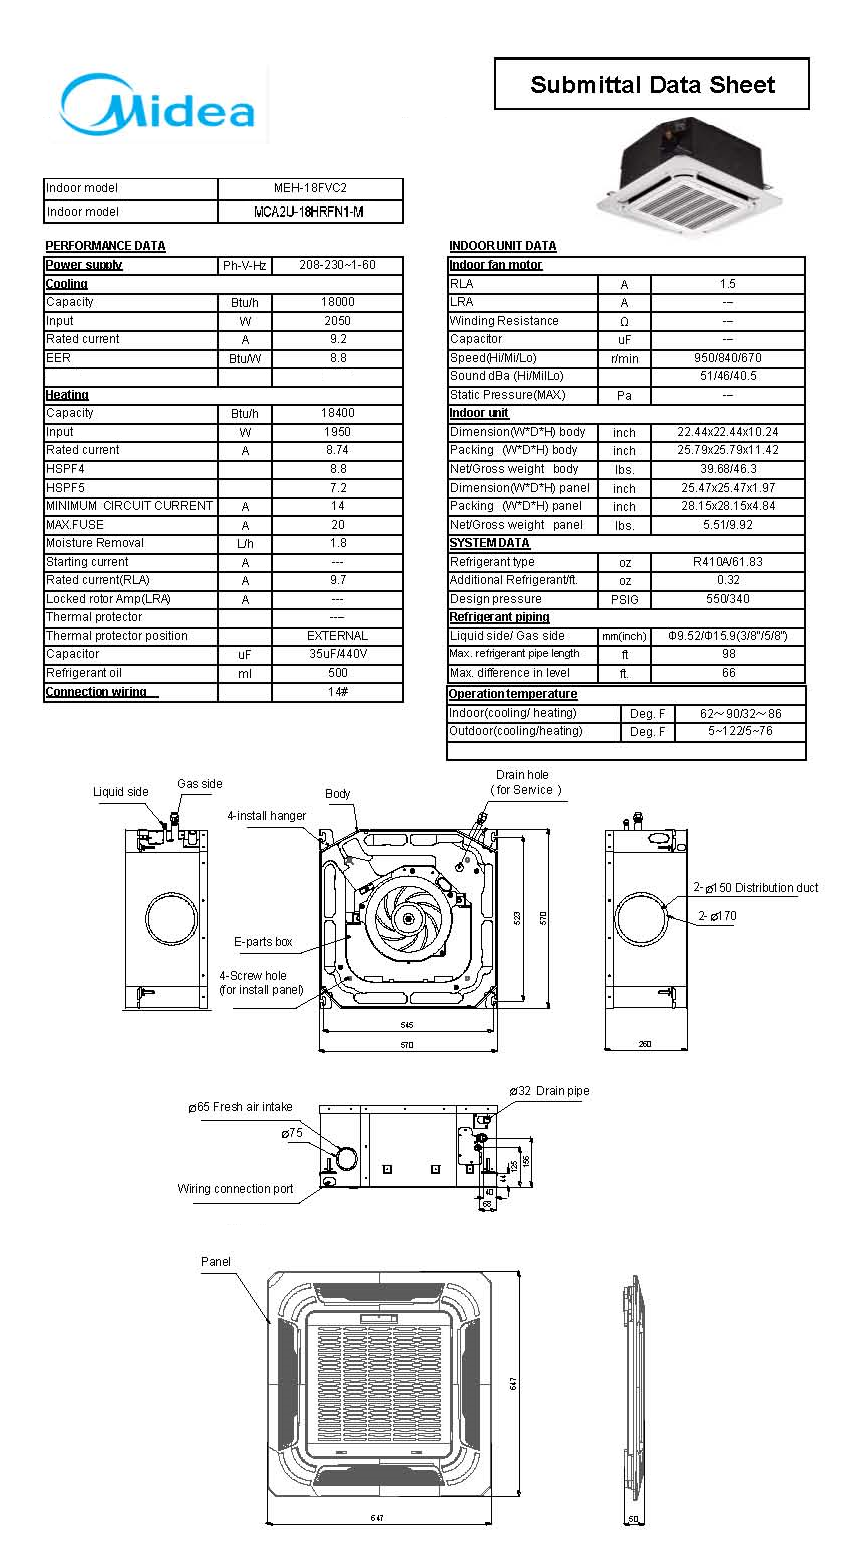 daikin mini split diagram